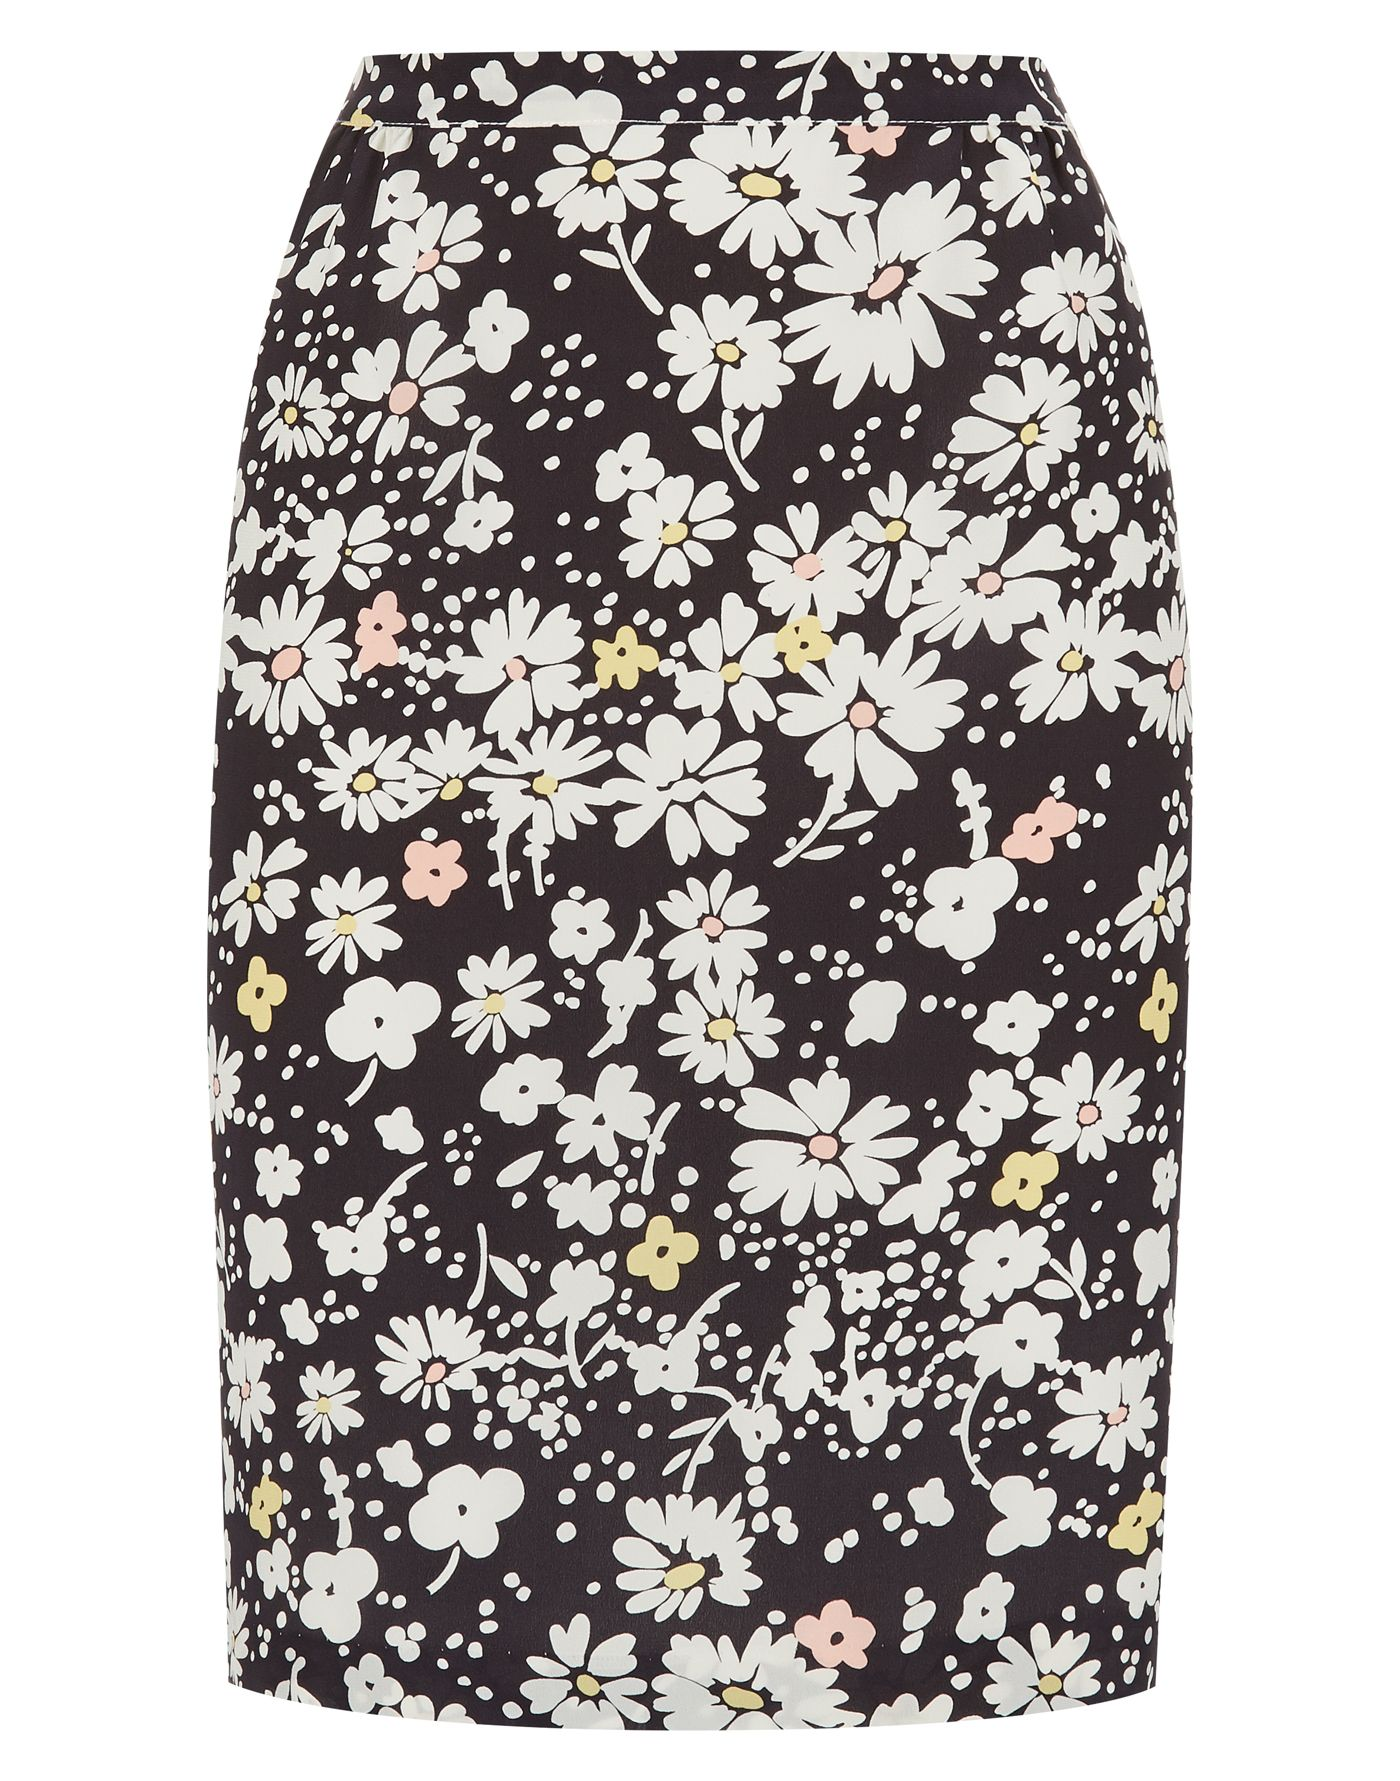 Daisy Field Print Skirt